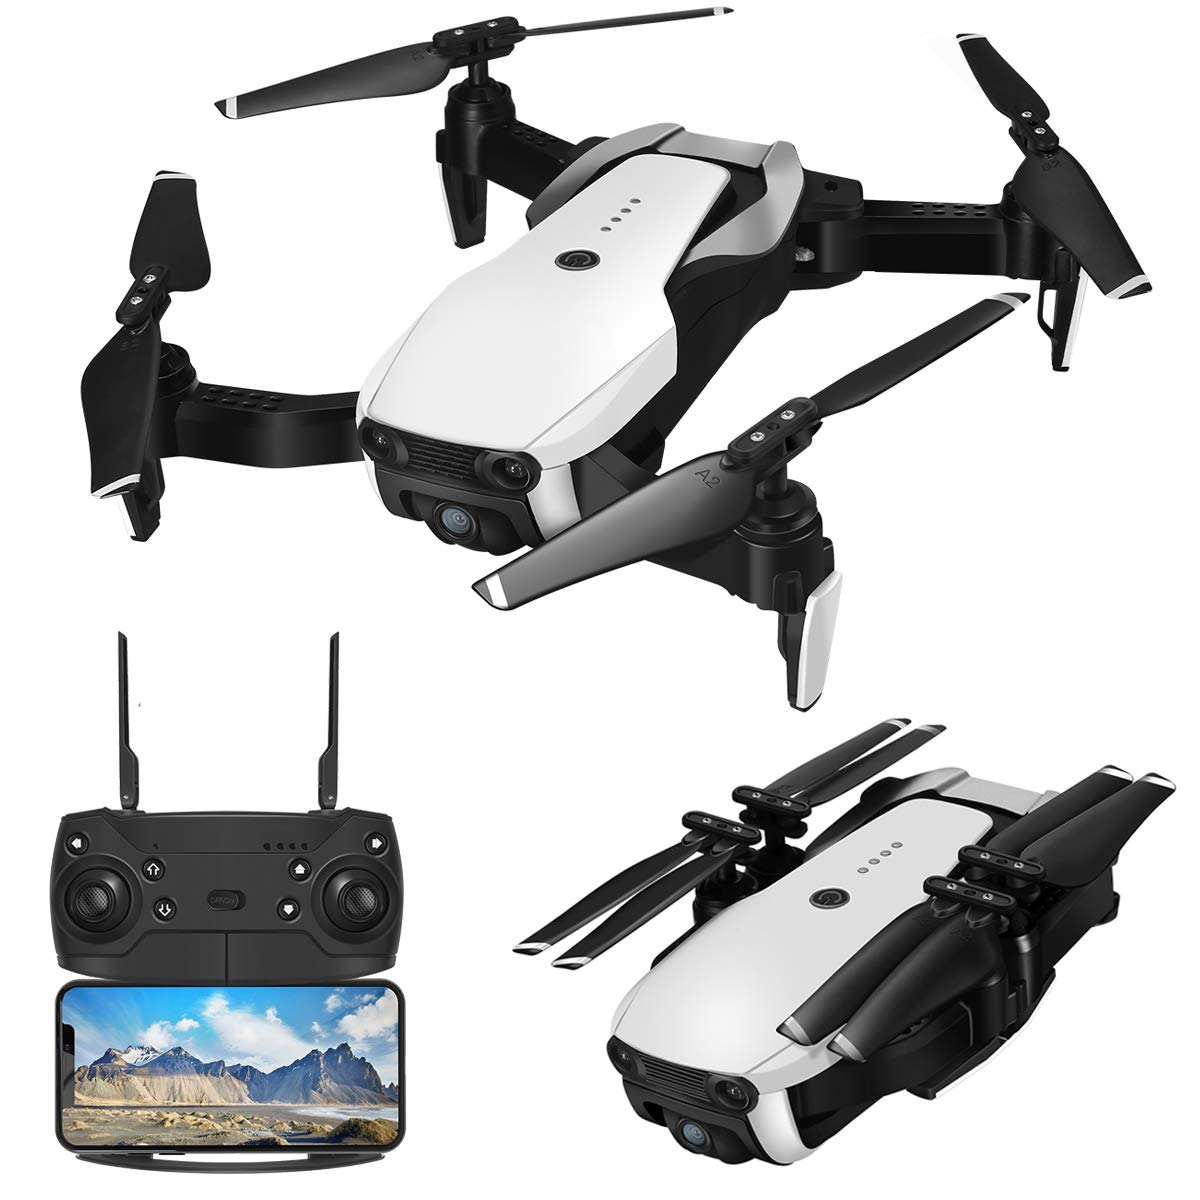 Drones with Camera 1080P for Adults,EACHINE E511 WiFi FPV Live Video Quadcopter with 120° FOV 1080P HD Camera, 17mins Long Flight Time Foldable RC Drone RTF - Altitude Hold, 3D Flip, APP Control by EACHINE (Image #1)